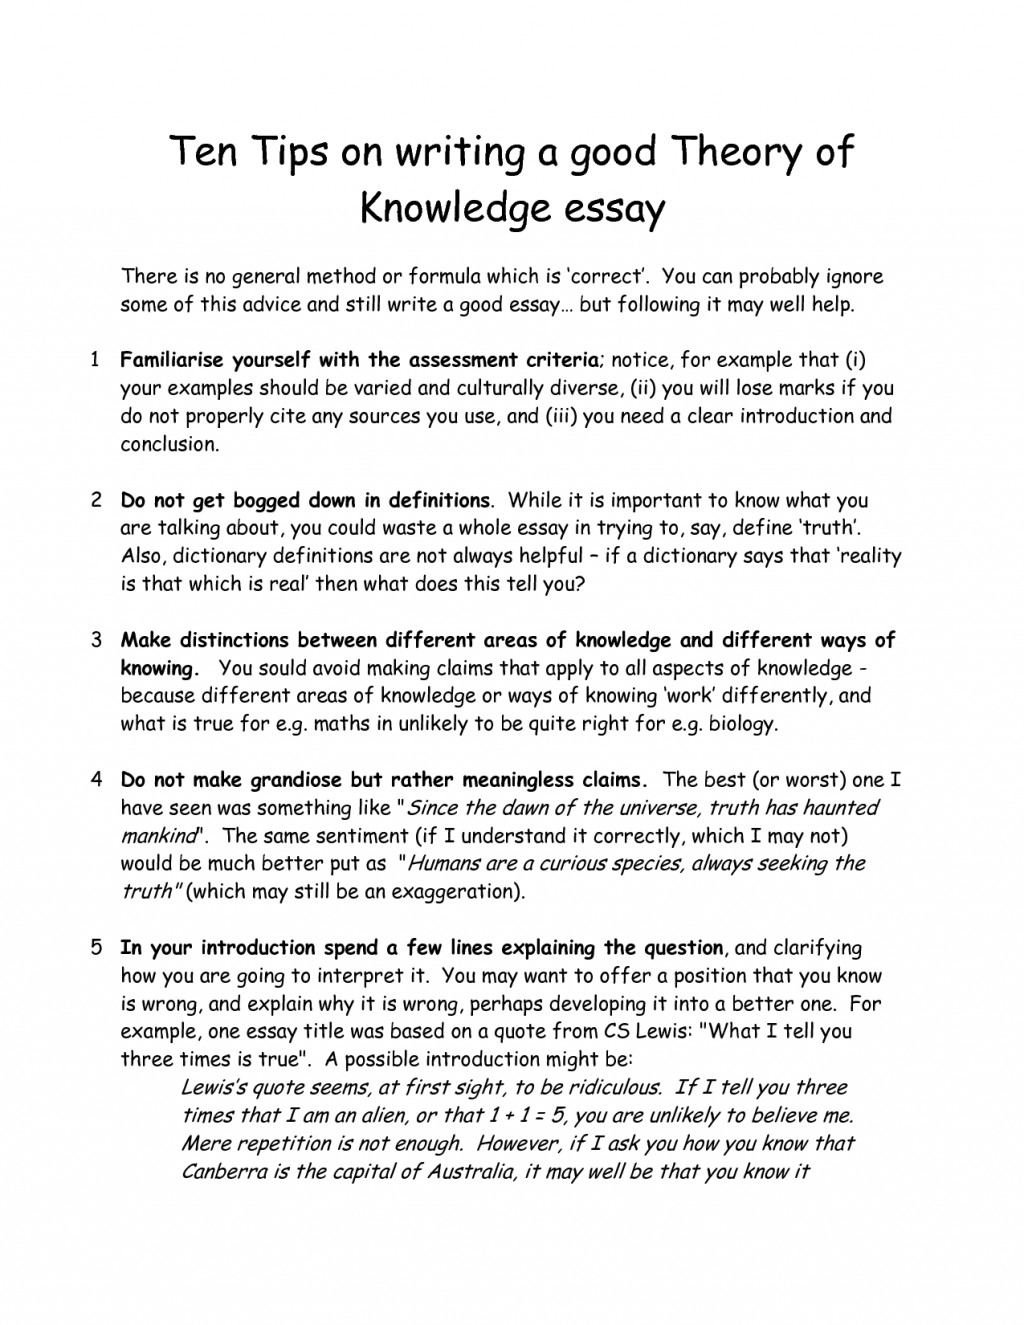 011 Qqllg0v8ct Tips To Write Good Essay Marvelous A Narrative Persuasive In Exam Large